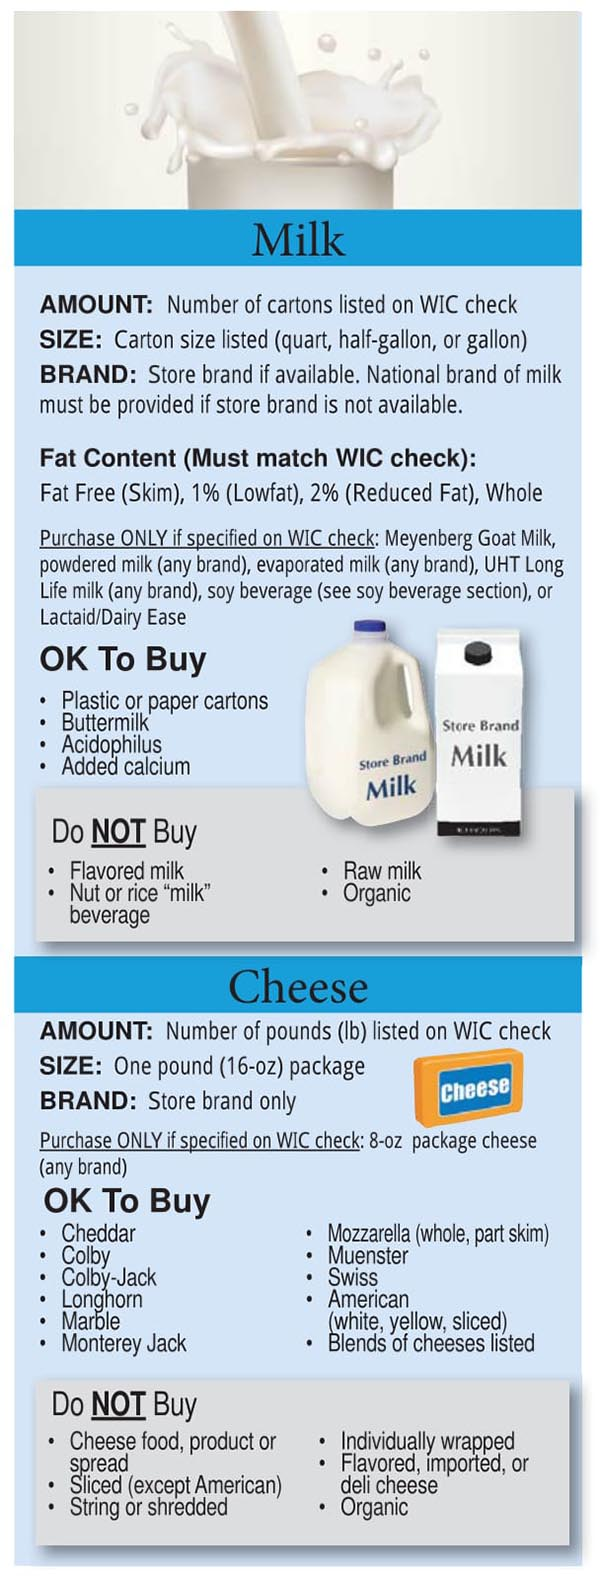 Colorado WIC Food List Milk and Cheese